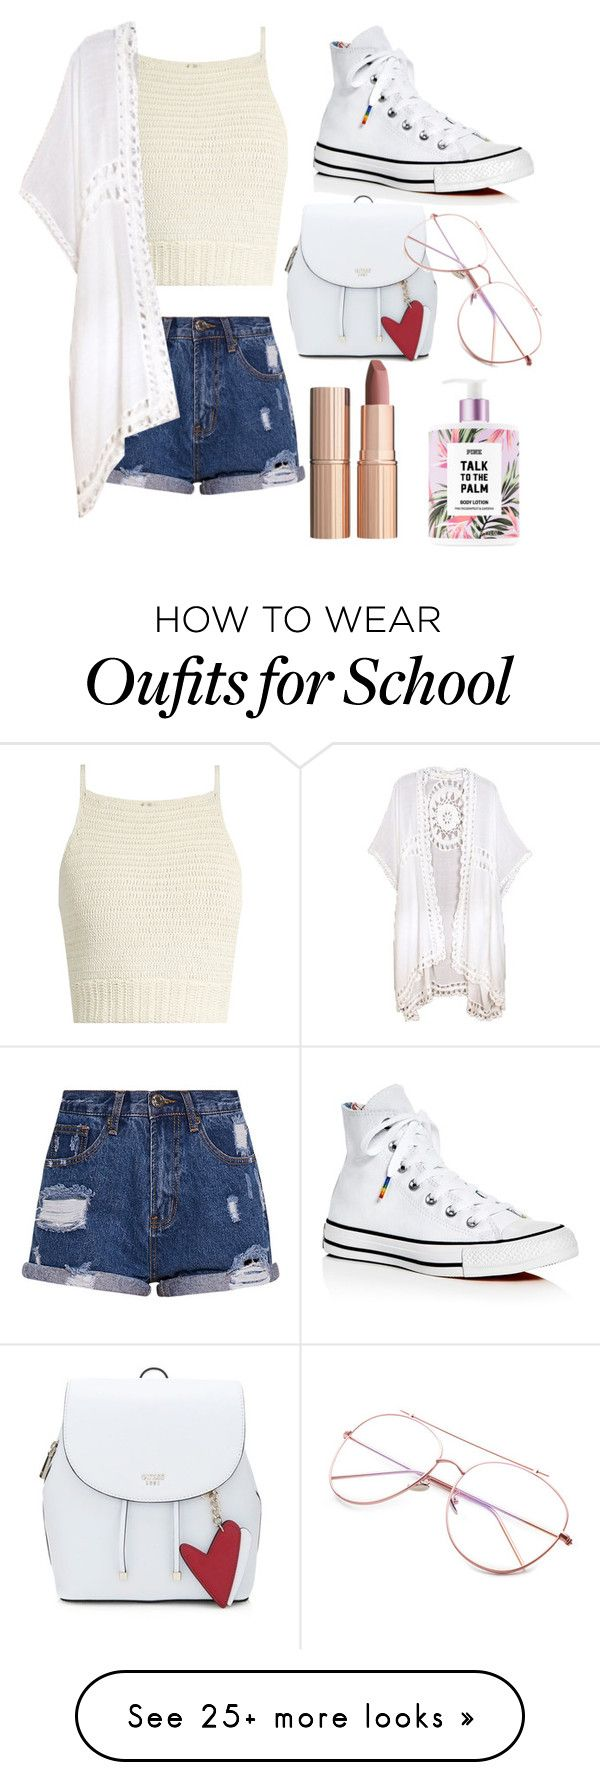 """ew, it's almost school."" by jeonayla on Polyvore featuring SHE MADE ME, Do Everything In Love, Converse and Charlotte Tilbury"